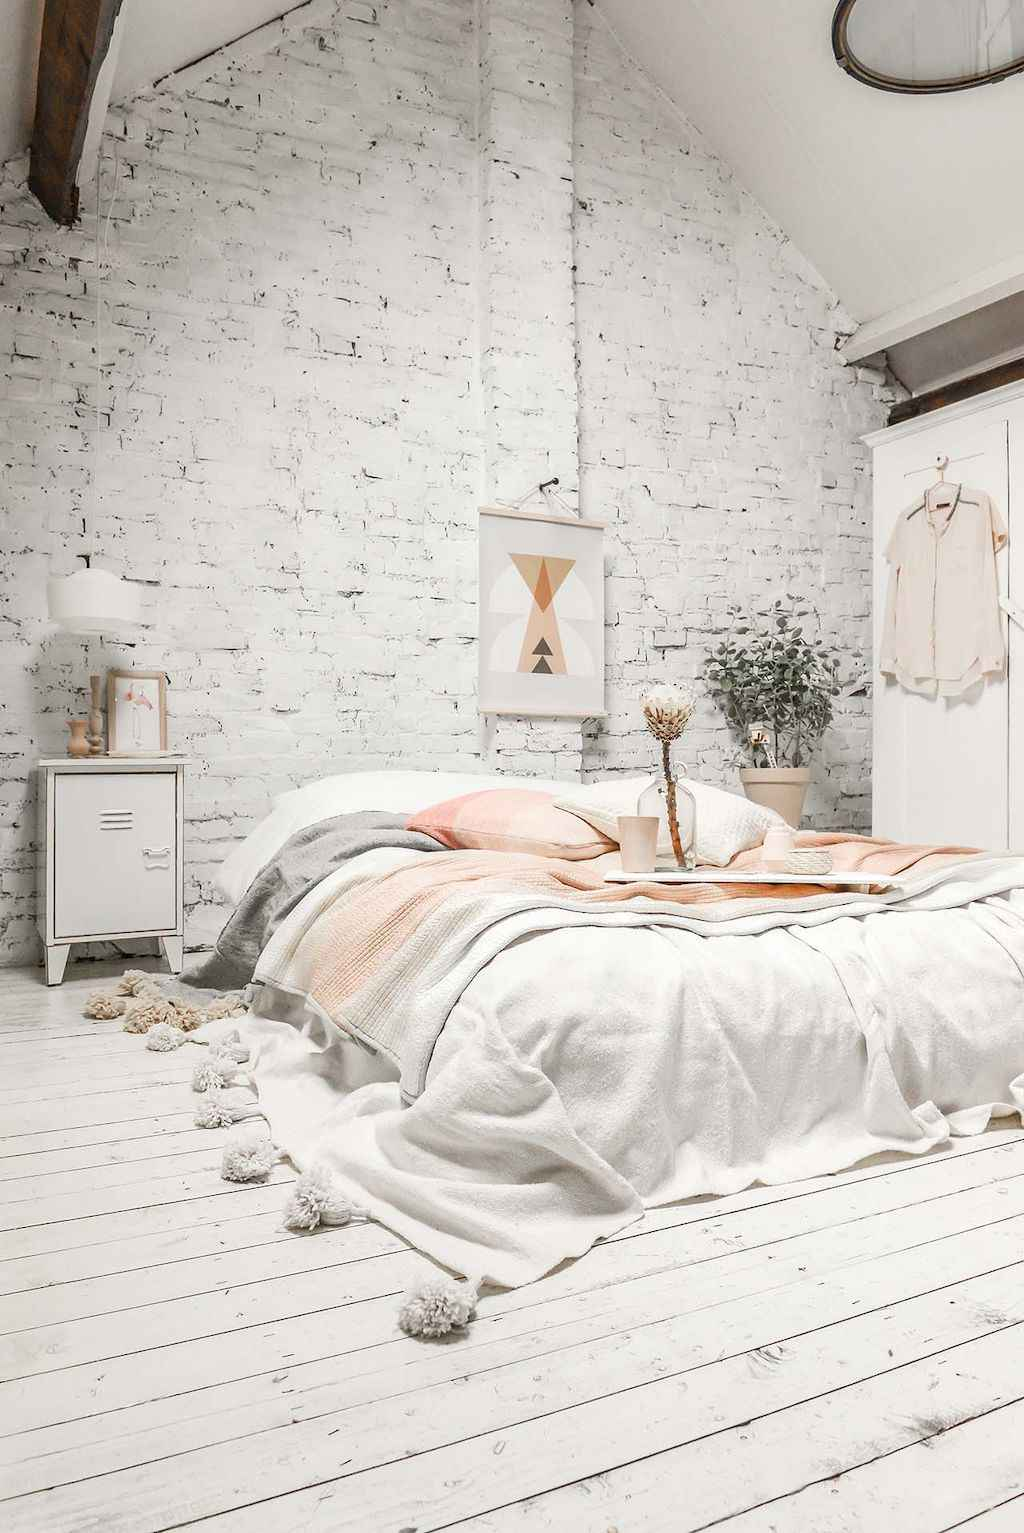 Simply bedroom decoration ideas (38)